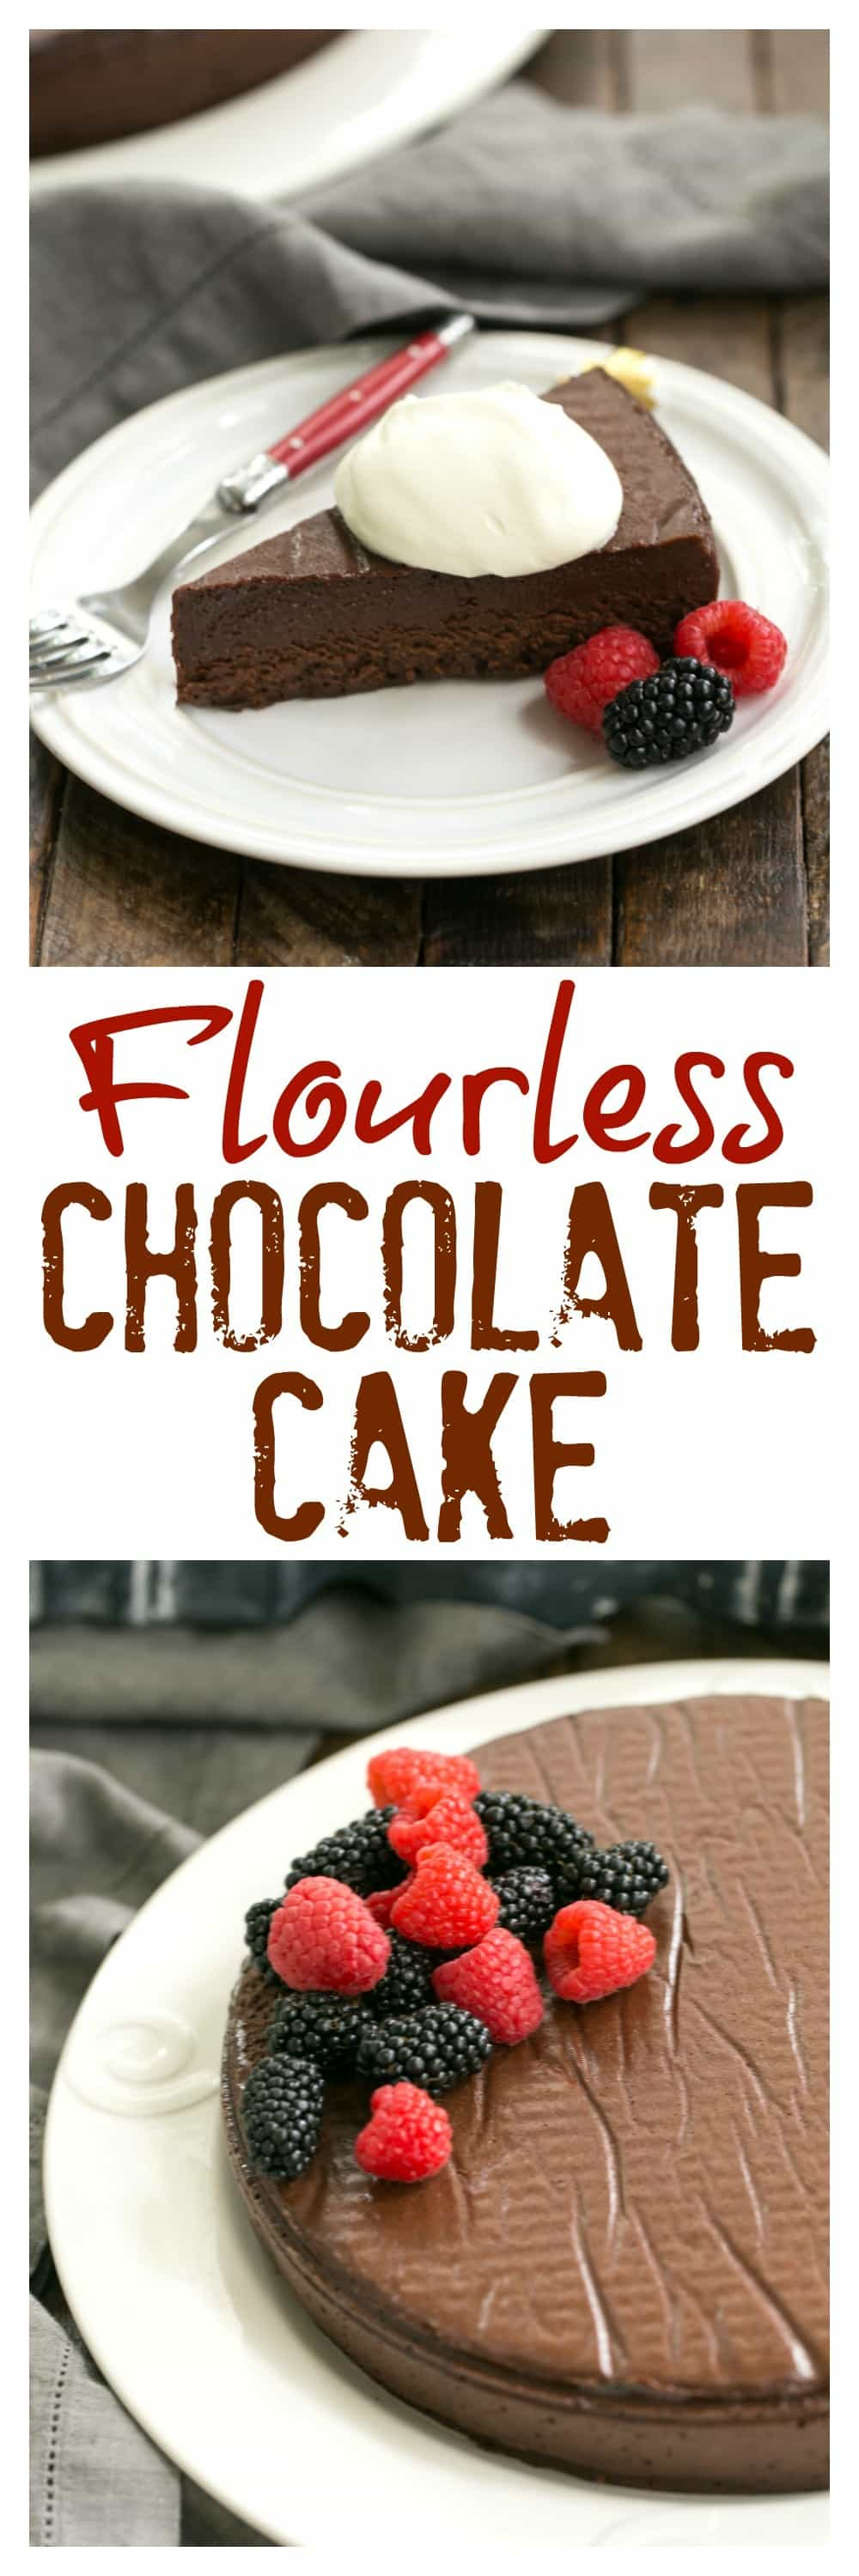 Flourless Cake Chocolate from Princeville Hotel - 5 simple ingredients make for one decadent, outrageously delicious dessert! #flourlesschocolatecake #chocolate #glutenfree #chocolatecake